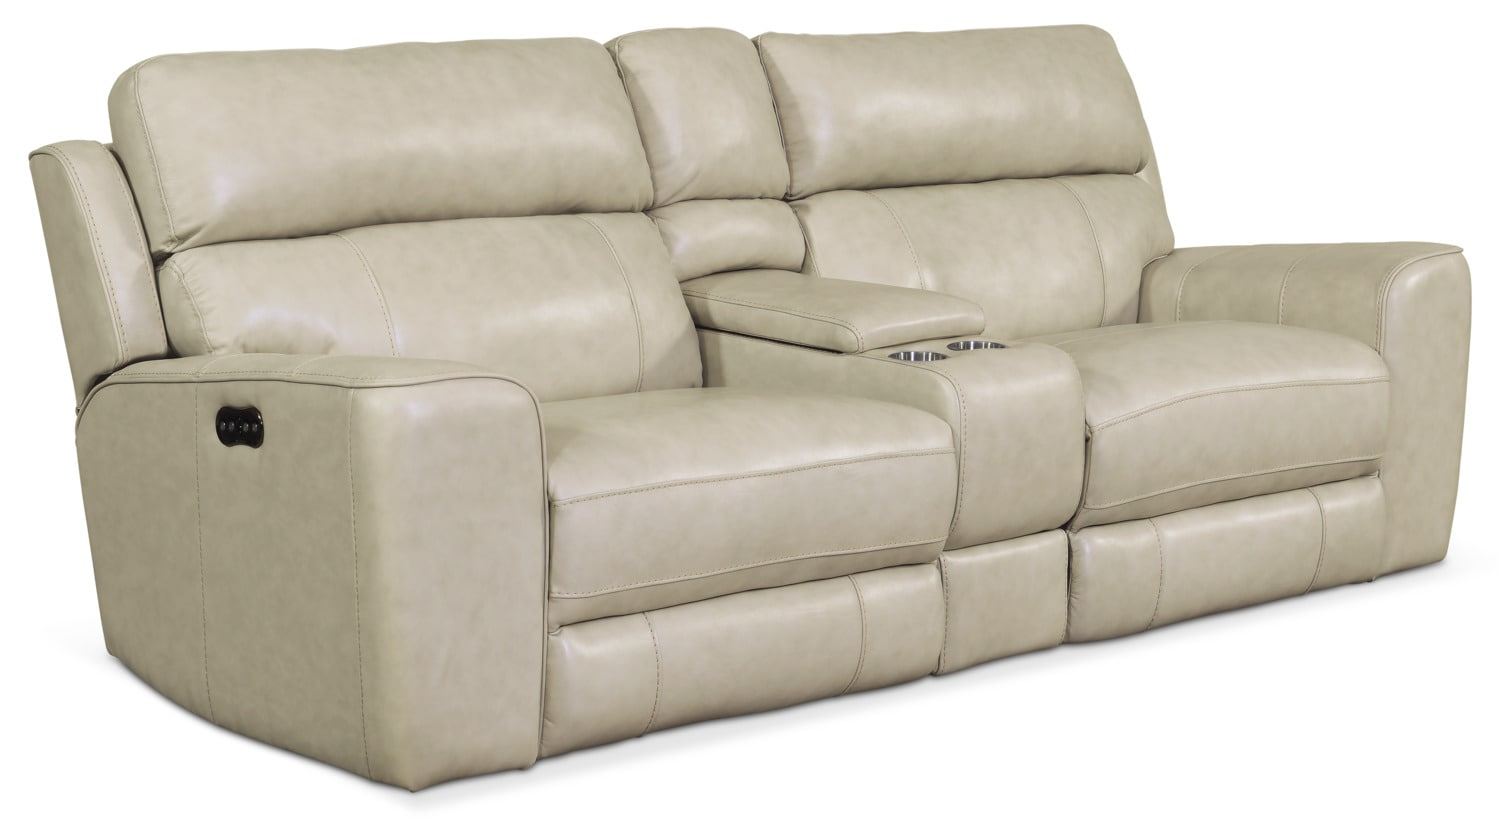 Living Room Furniture - Newport 3-Piece Power Reclining Sofa - Cream